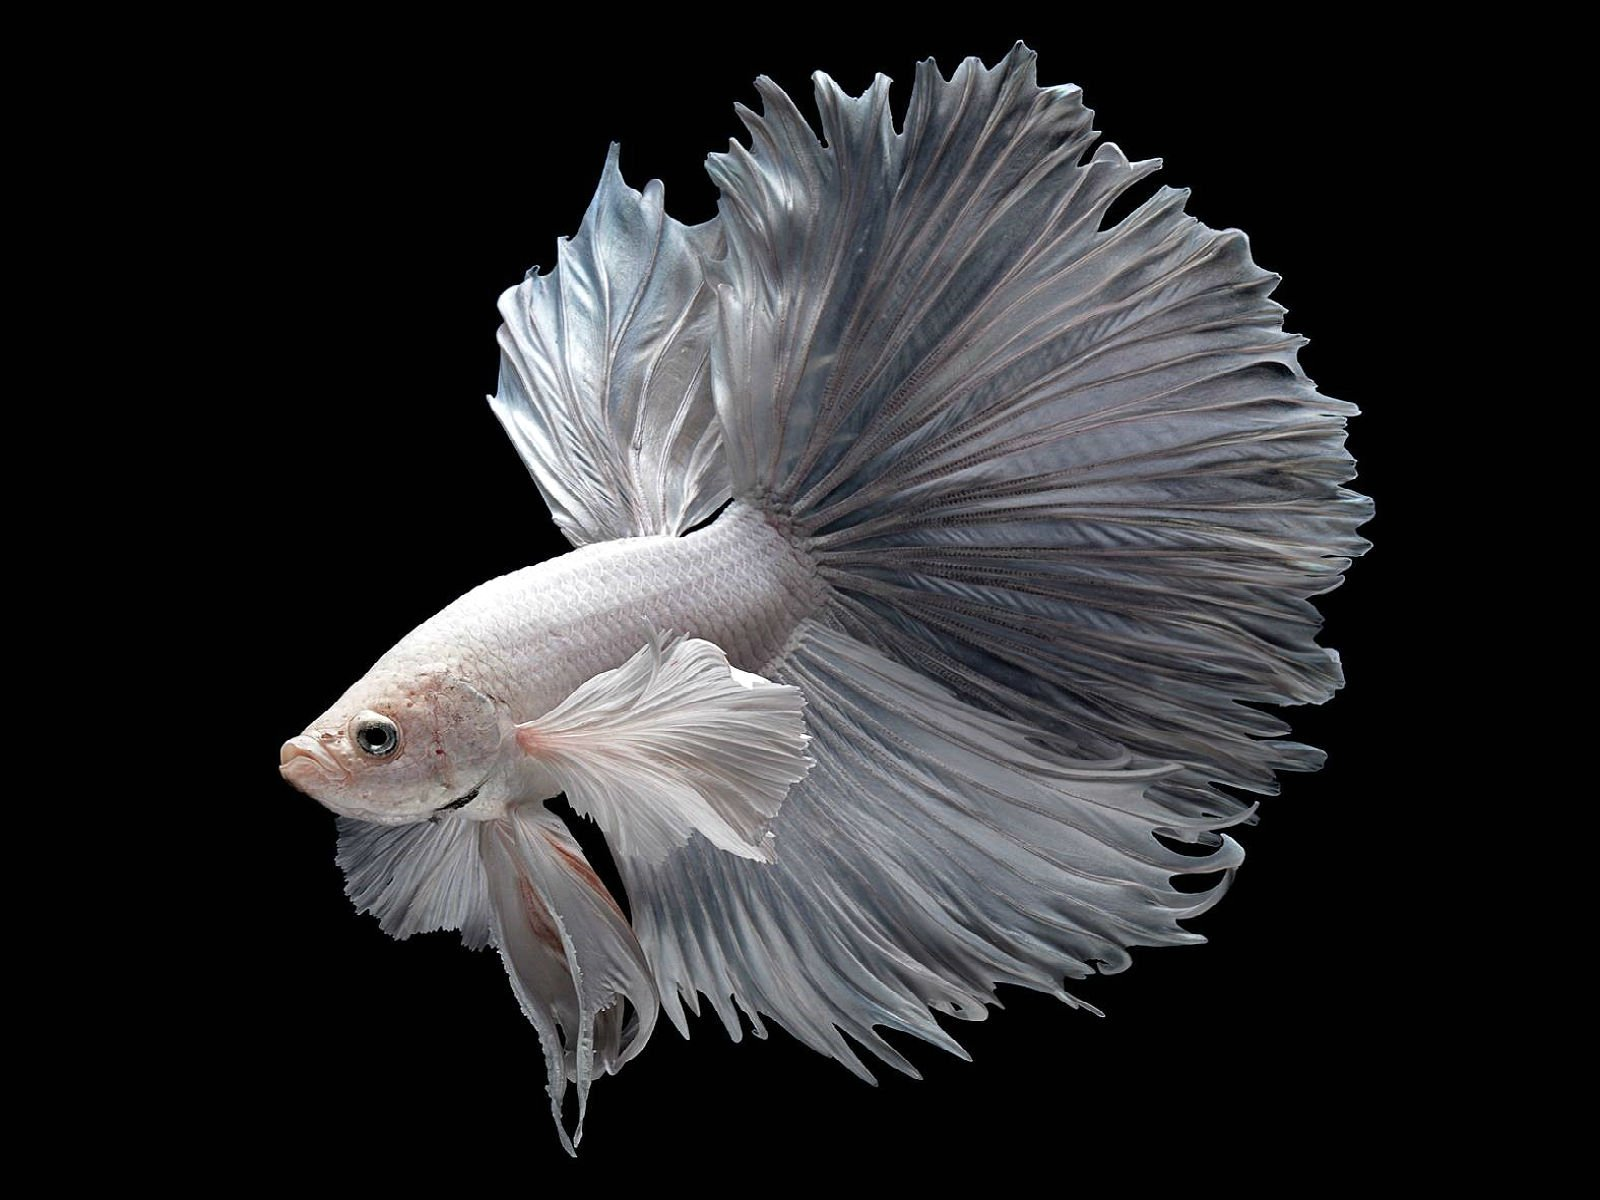 Fighter Fish Hd Wallpaper Download Betta Wallpaper And Background Image 1600x1200 Id